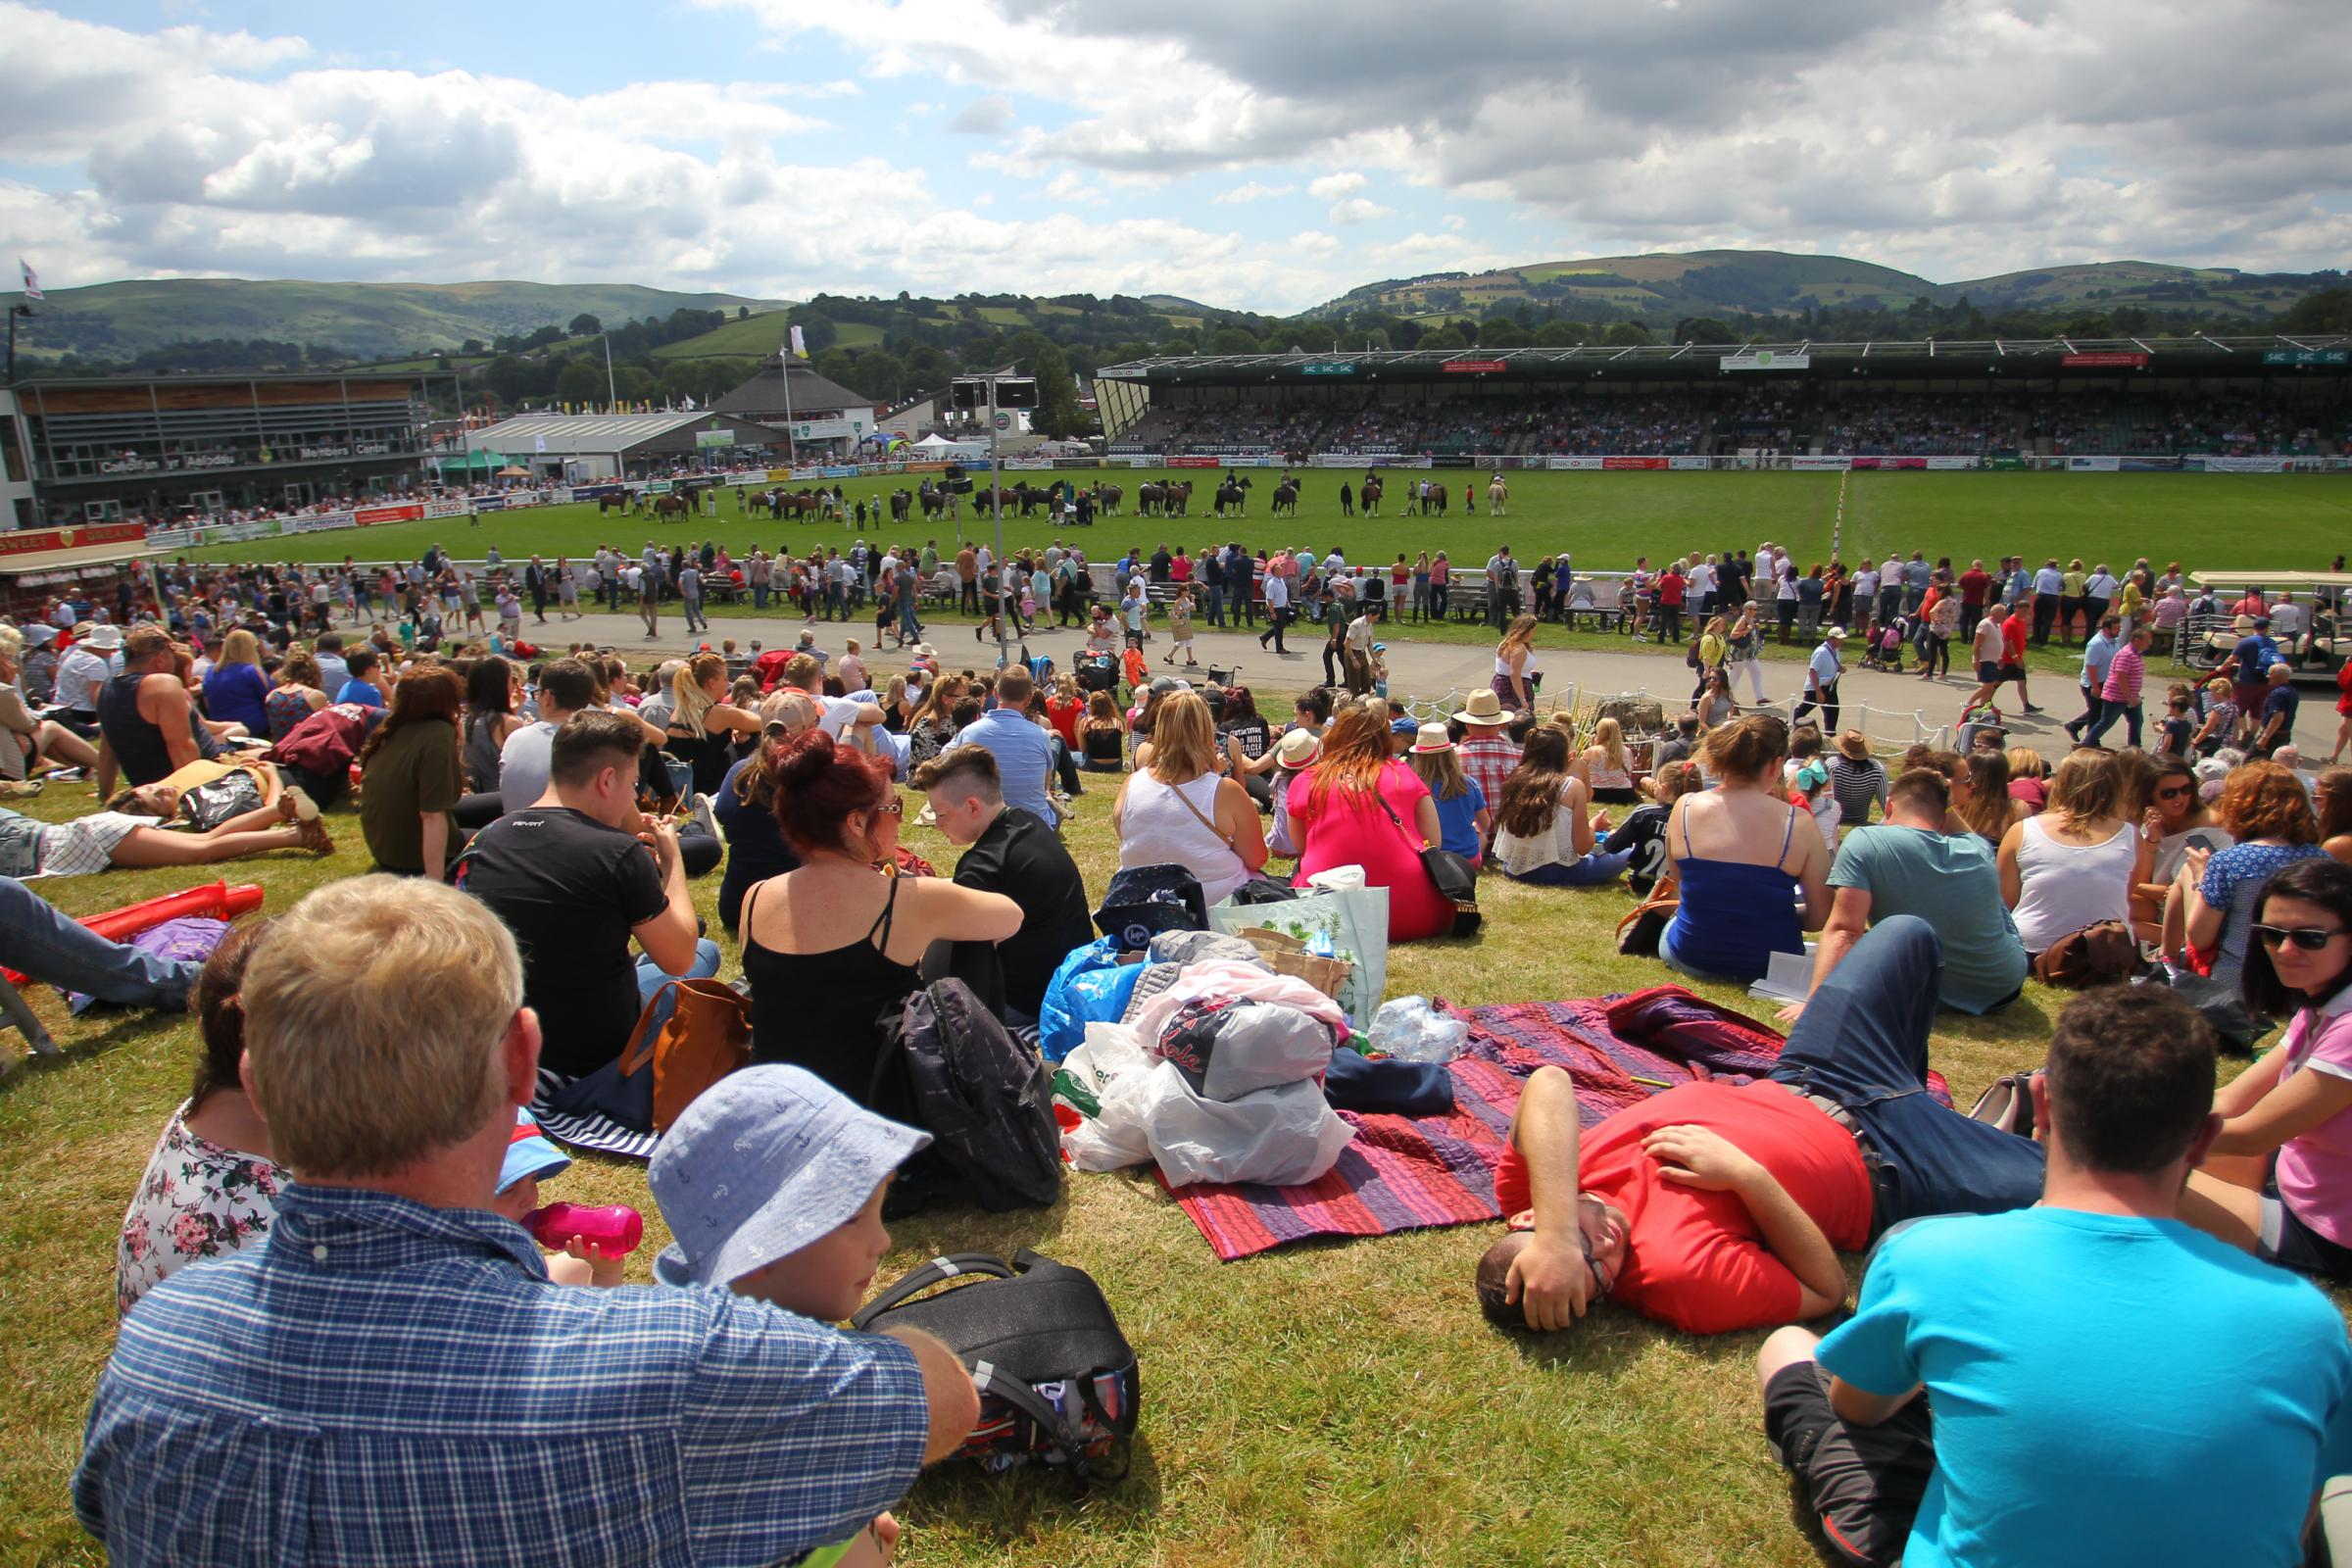 Wales' largest agricultural show begins on July 23.